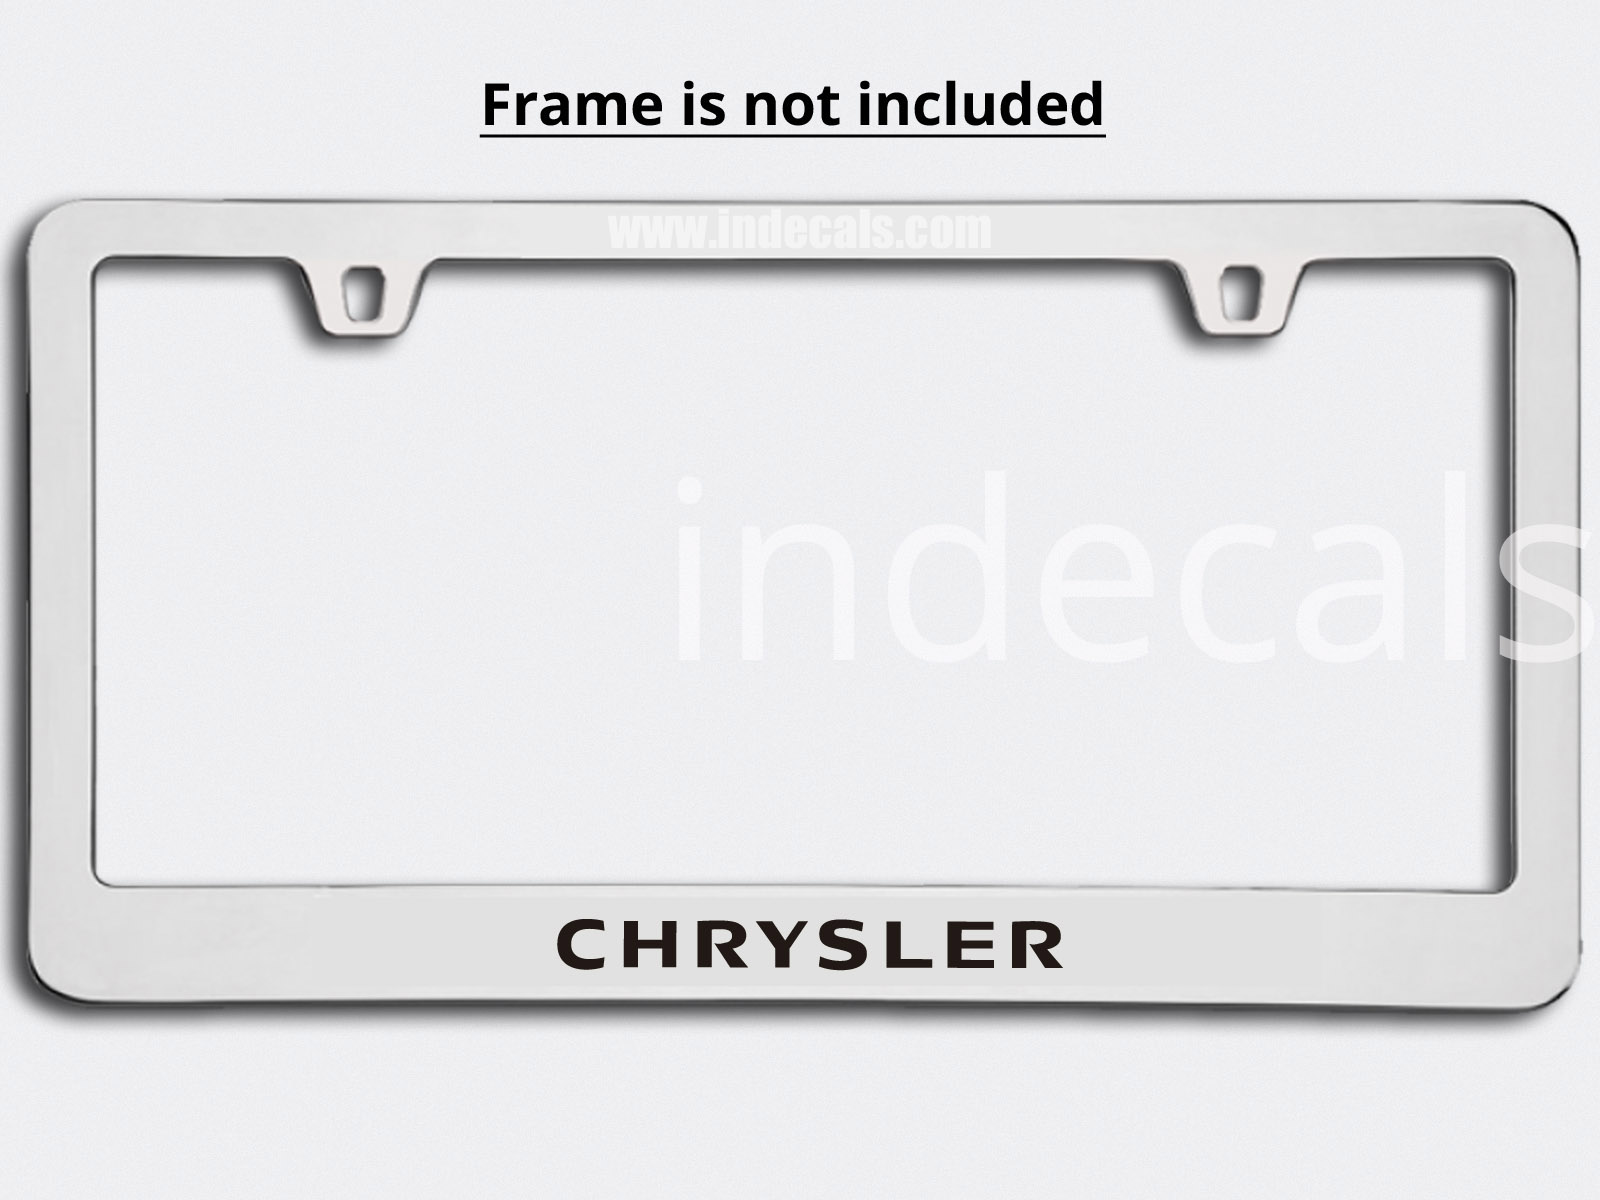 3 x Chrysler Stickers for Plate Frame - Black